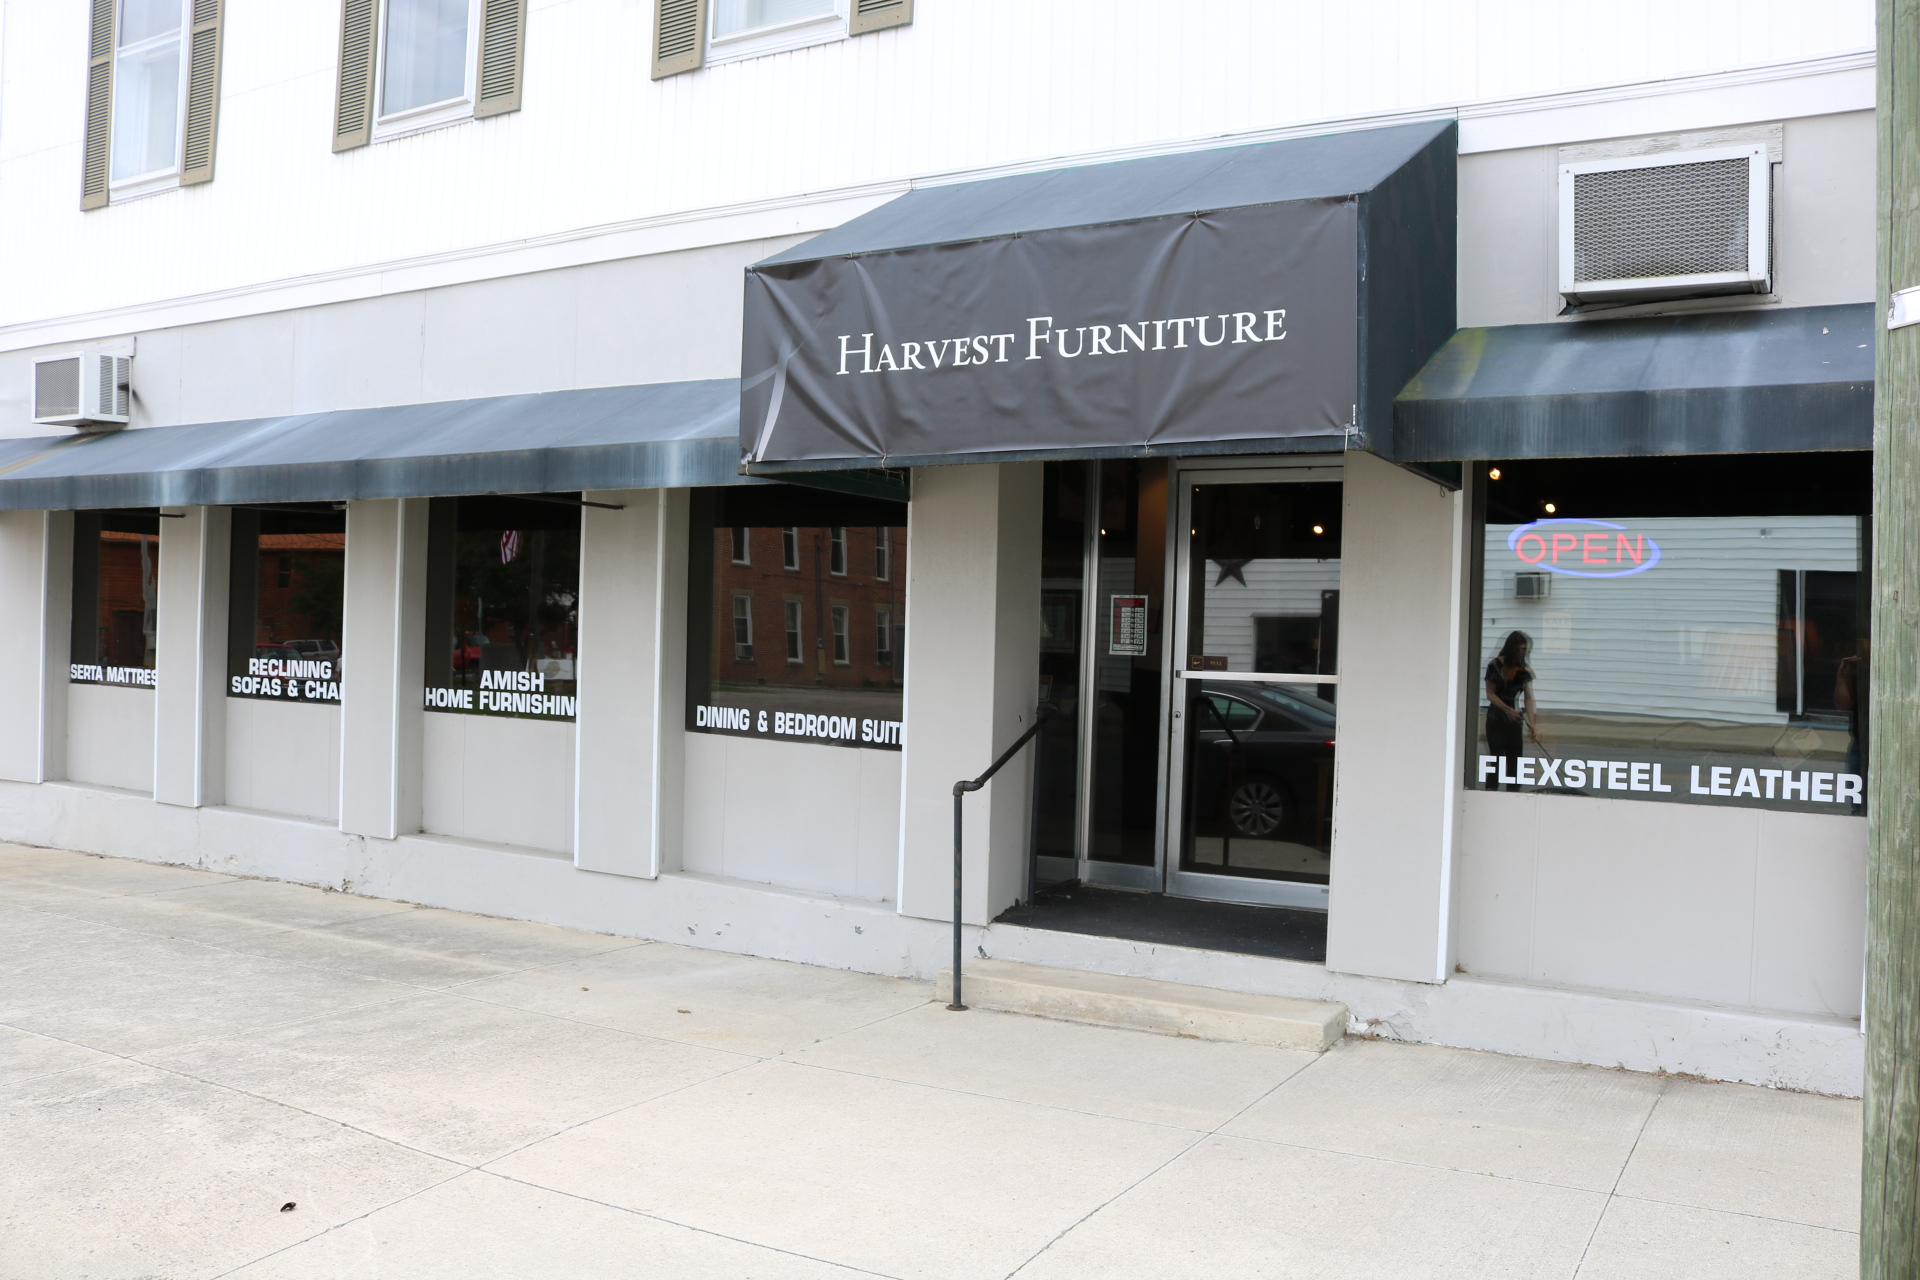 Harvest Furniture Coupons near me in Waldo